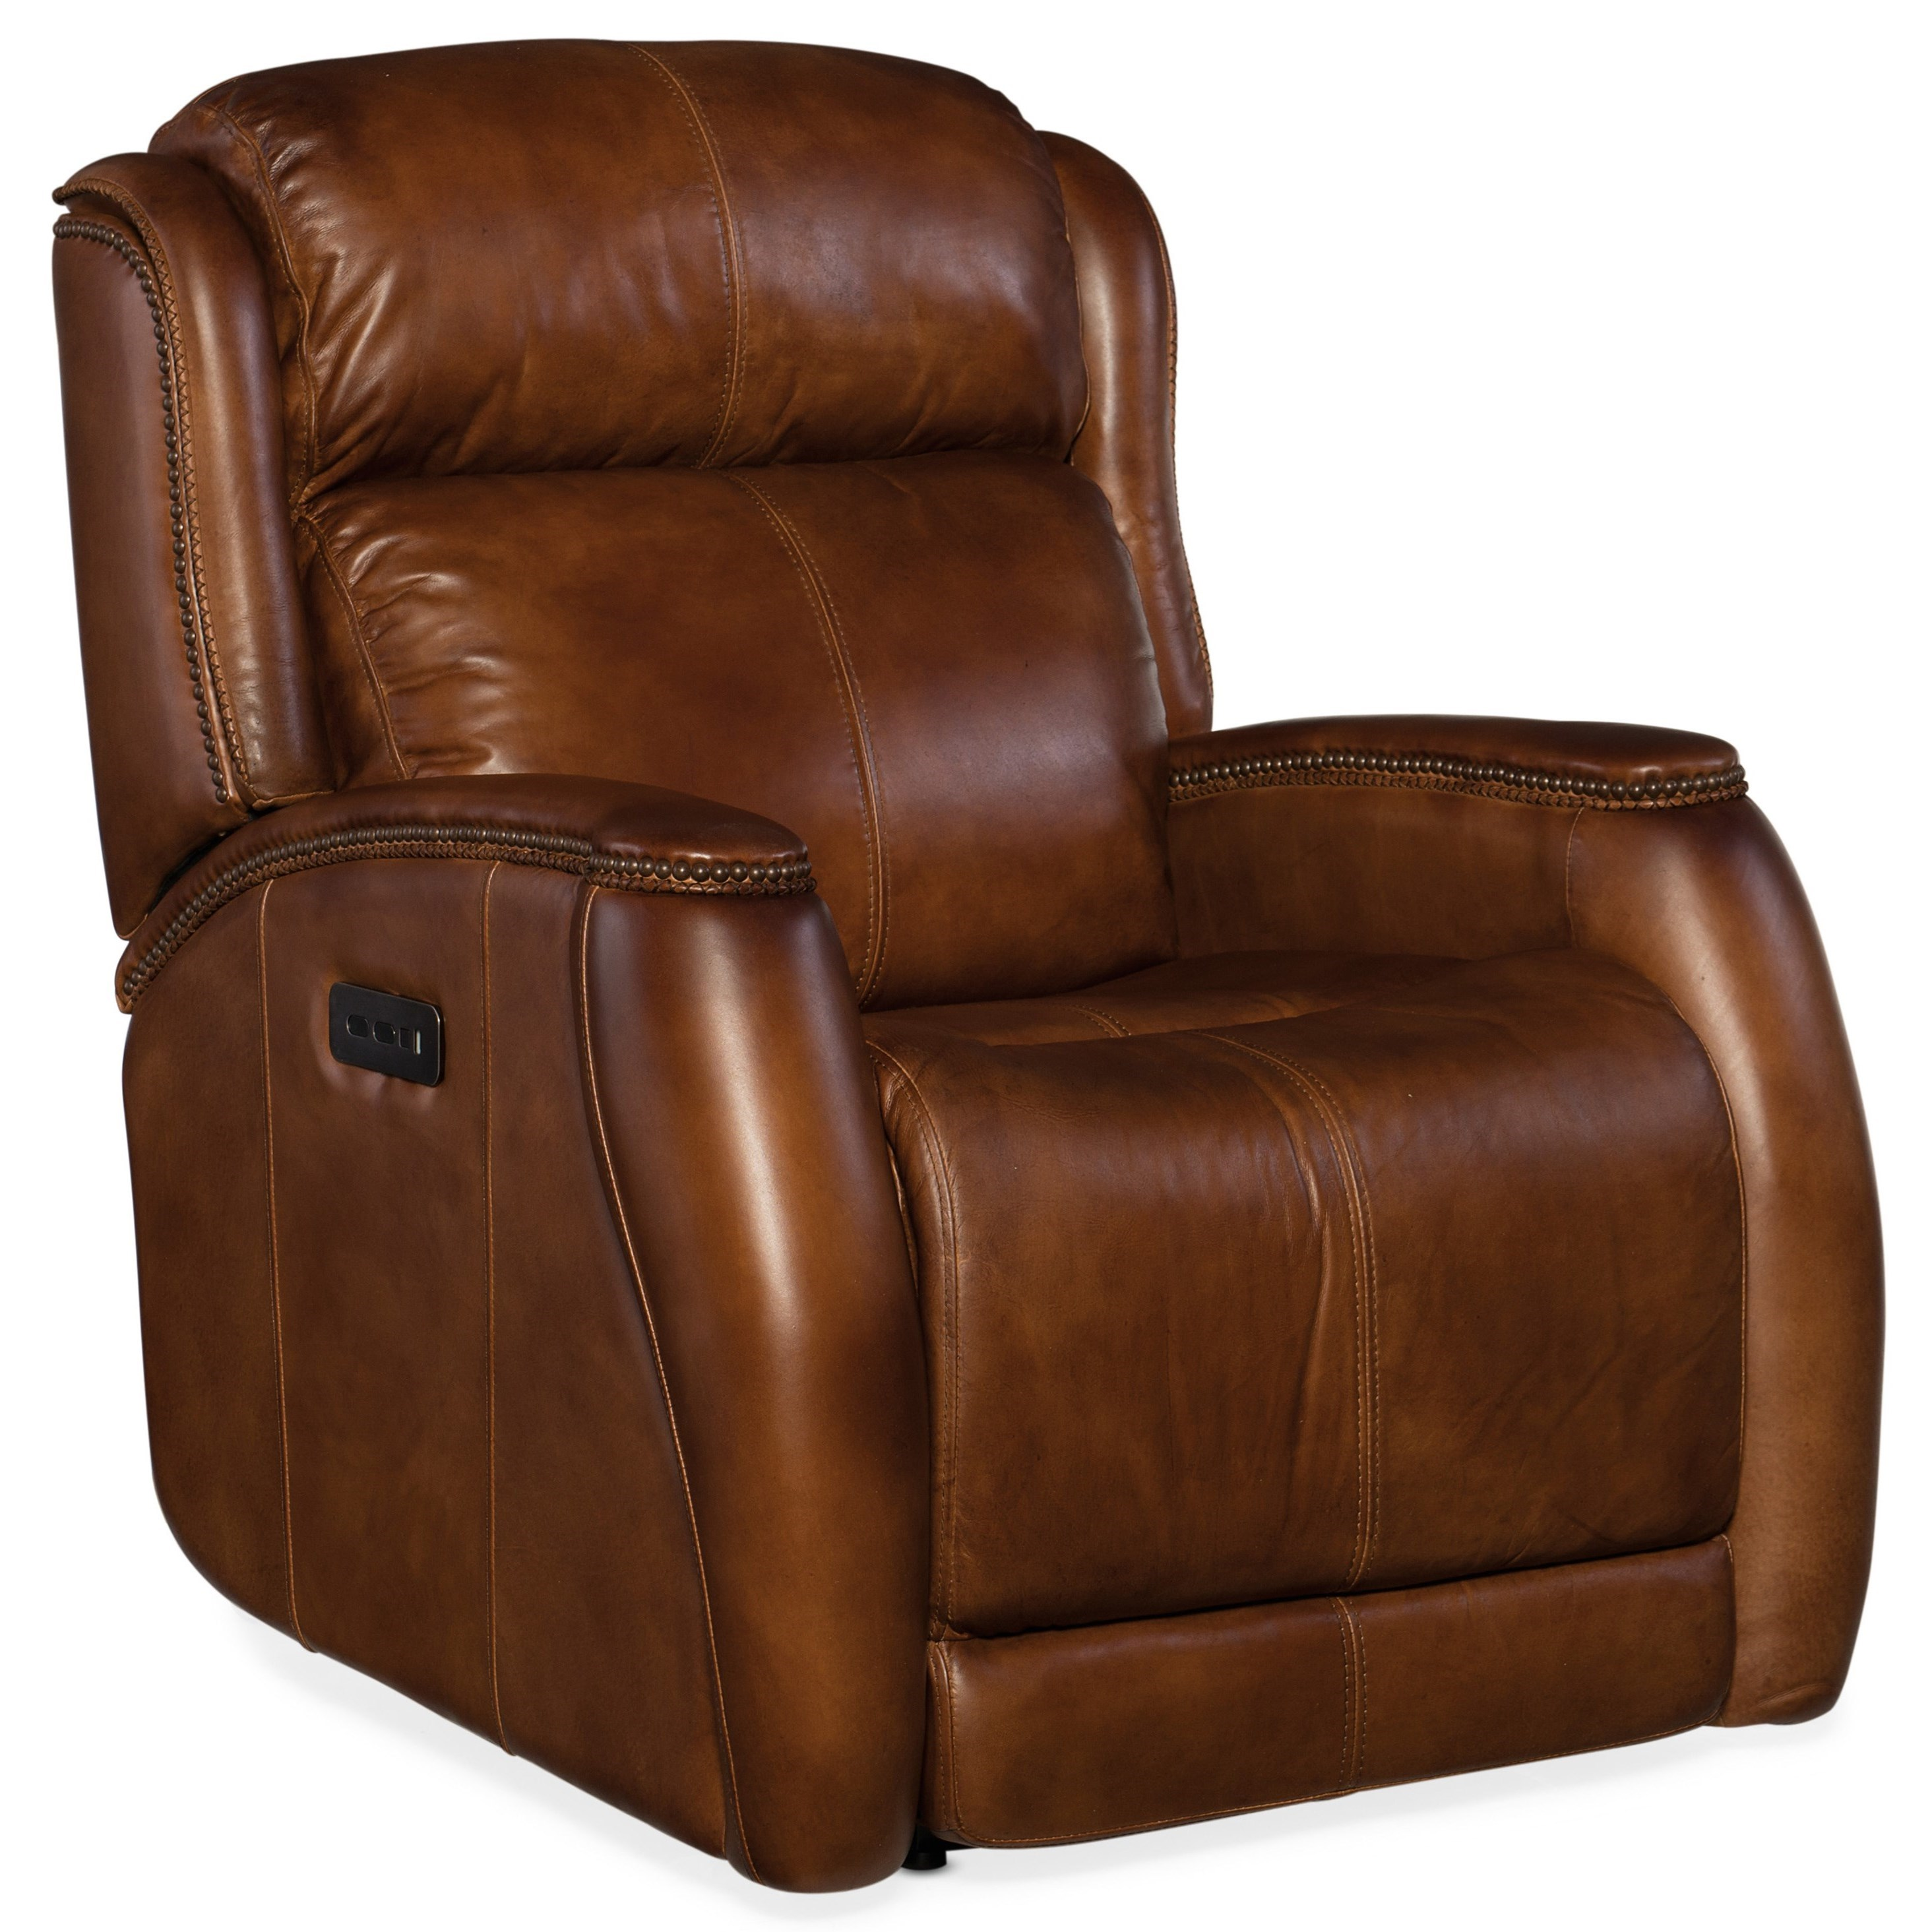 Emerson Power Recliner with Power Headrest by Hooker Furniture at Miller Waldrop Furniture and Decor